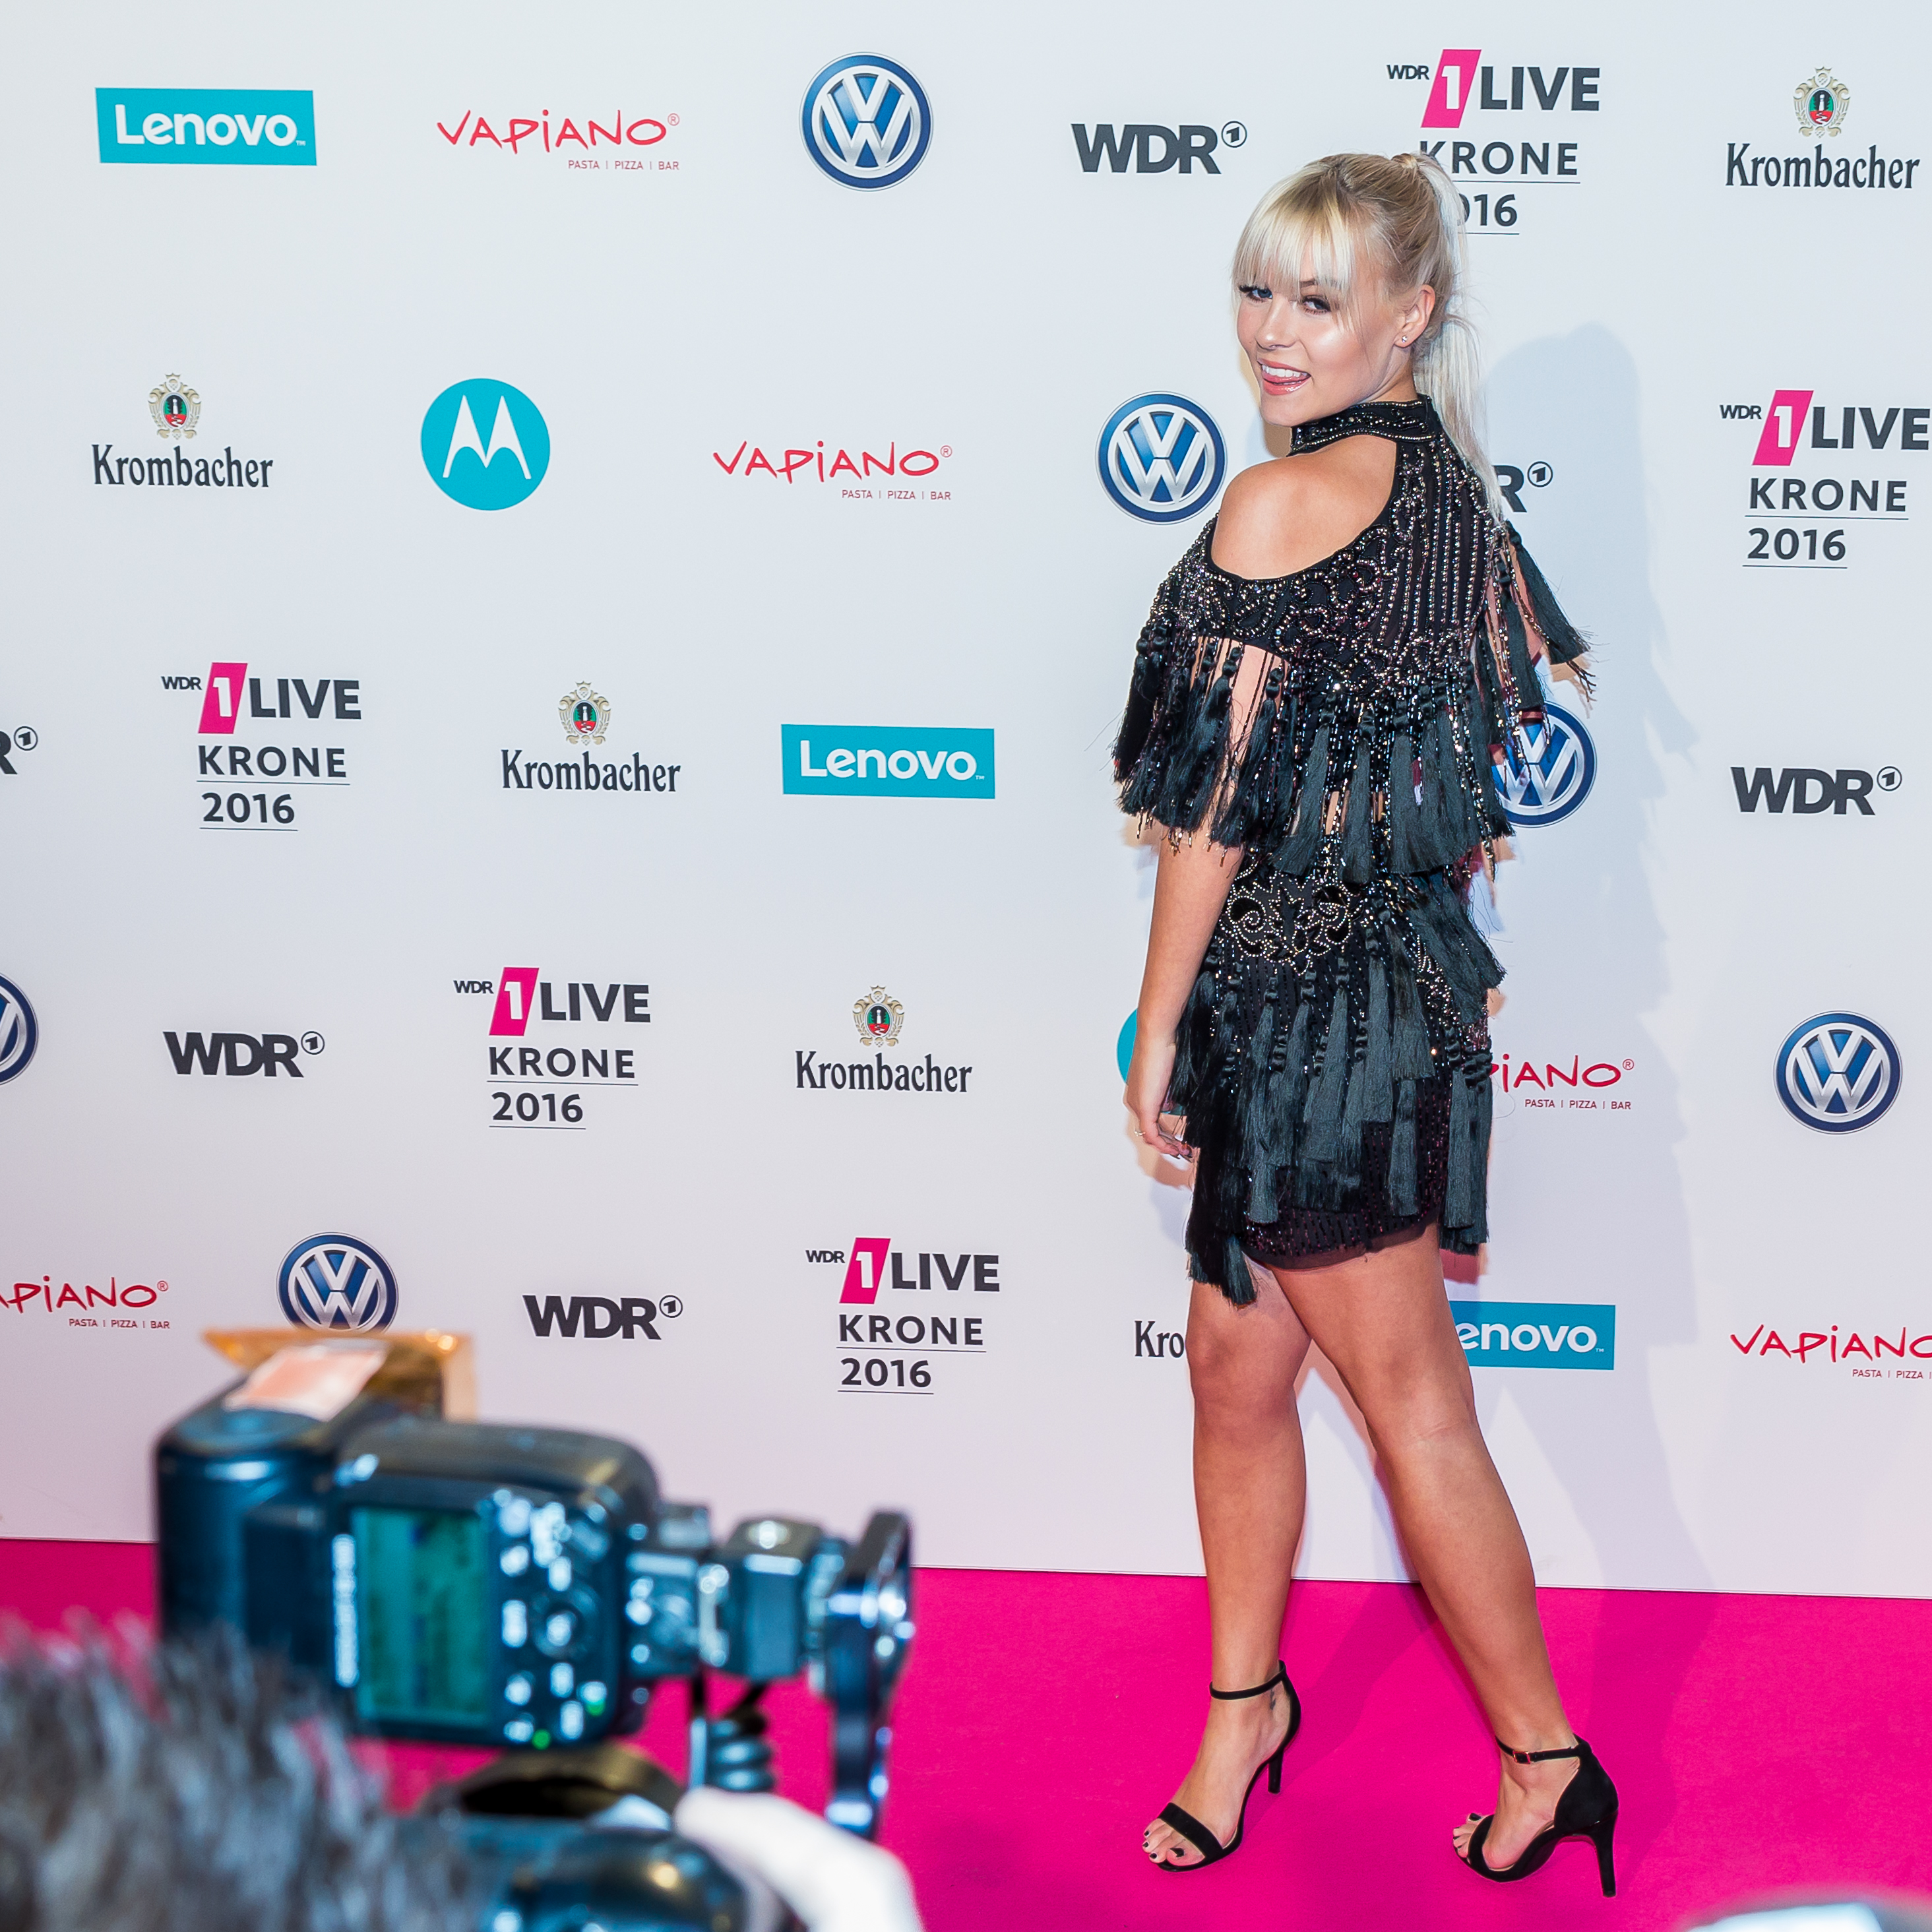 1 Live Krone 2015 Roter Teppich Dagi Bee Roter Teppich